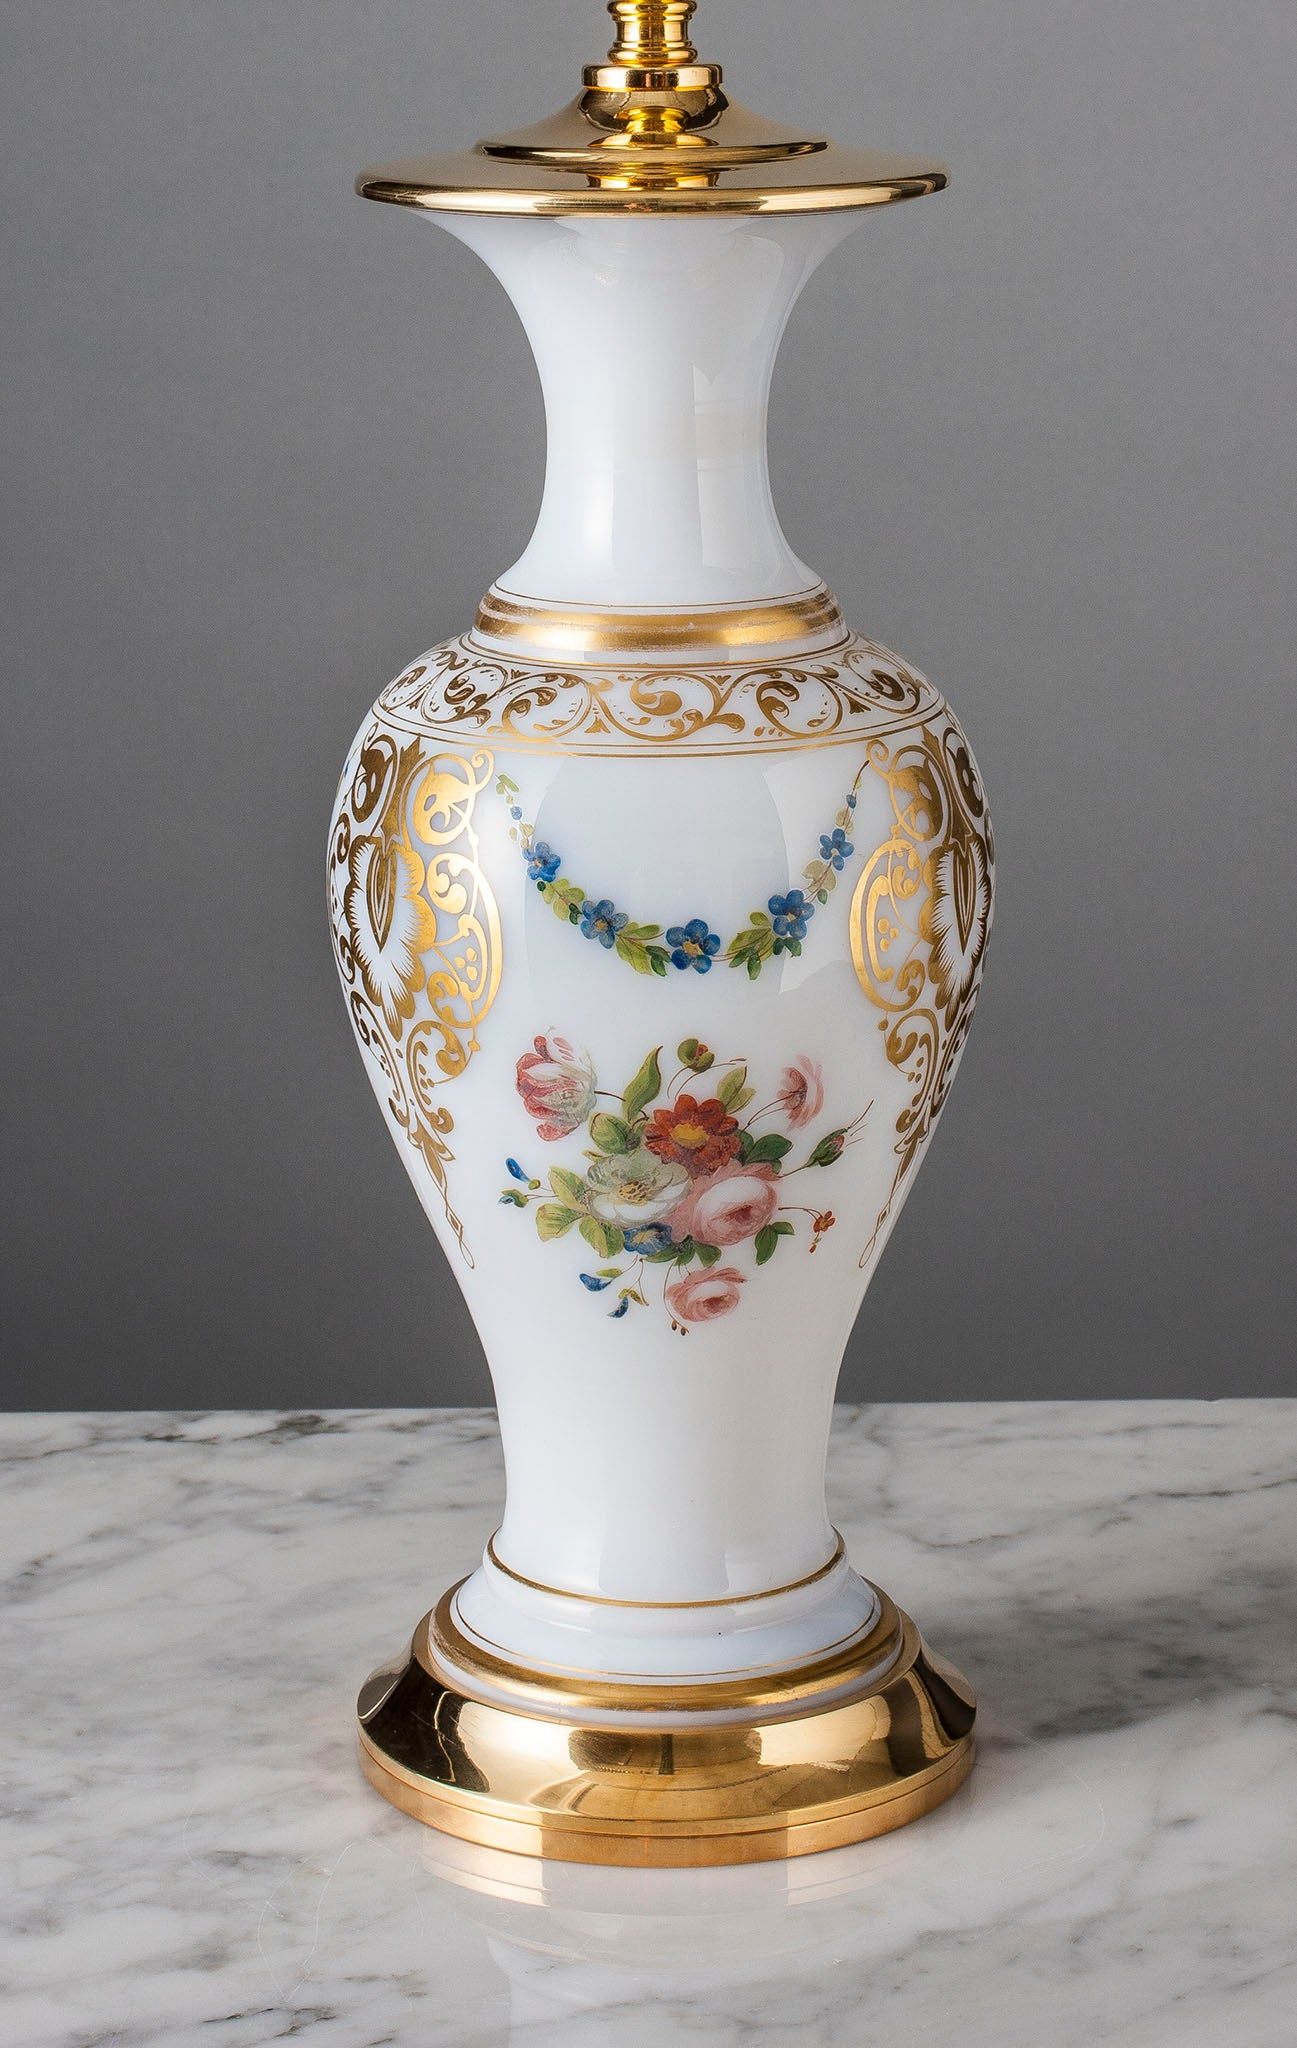 G051 A Very Pretty French Opaline Glass Lamp Of Neo Classic Style - Circa 1880